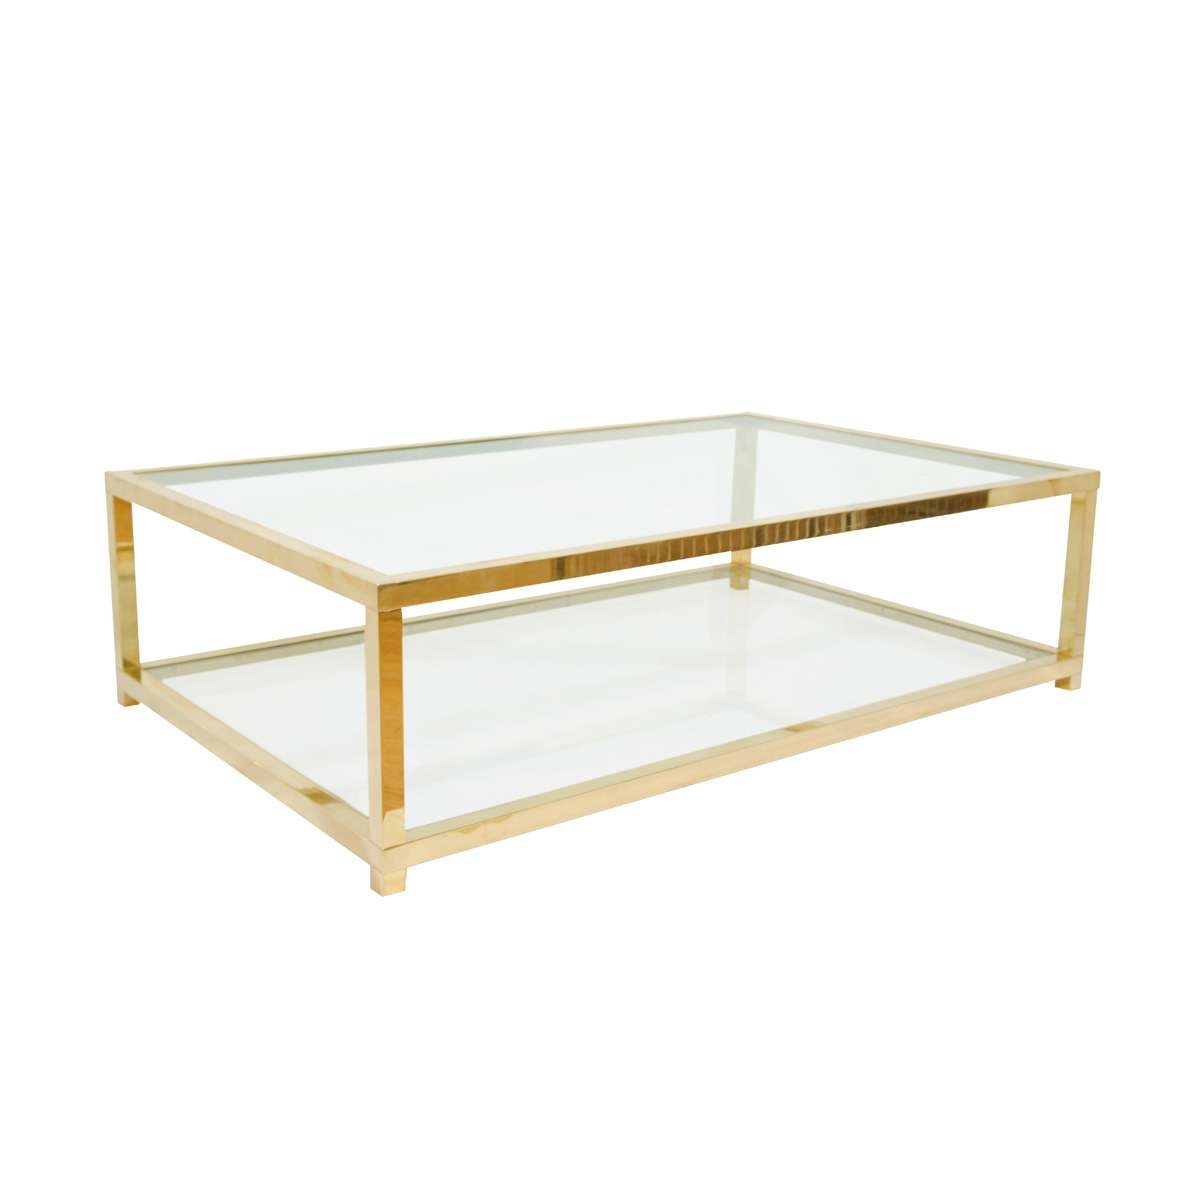 Preferred Bronze And Glass Coffee Tables Regarding Coffee Tables : Simple Two Tiered Brass And Glass Coffee Table (View 11 of 20)